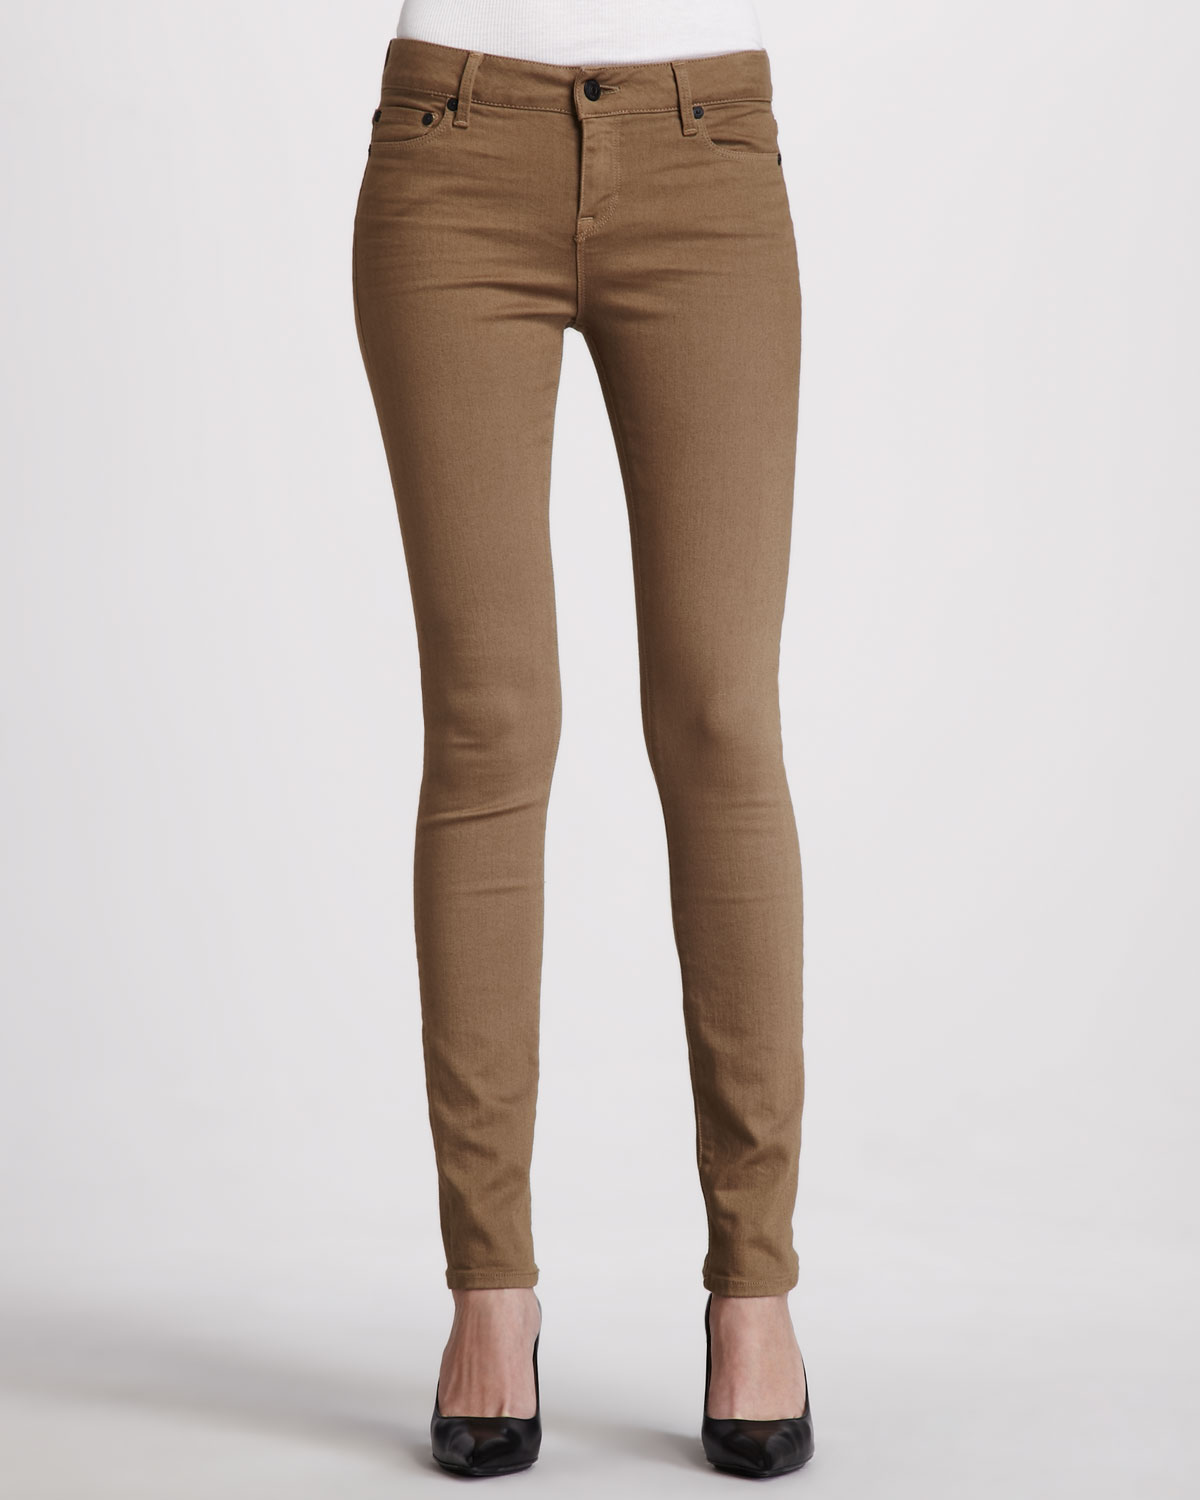 Find great deals on Womens Beig/khaki Pants at Kohl's today! Sponsored Links Outside companies pay to advertise via these links when specific phrases and words are searched.